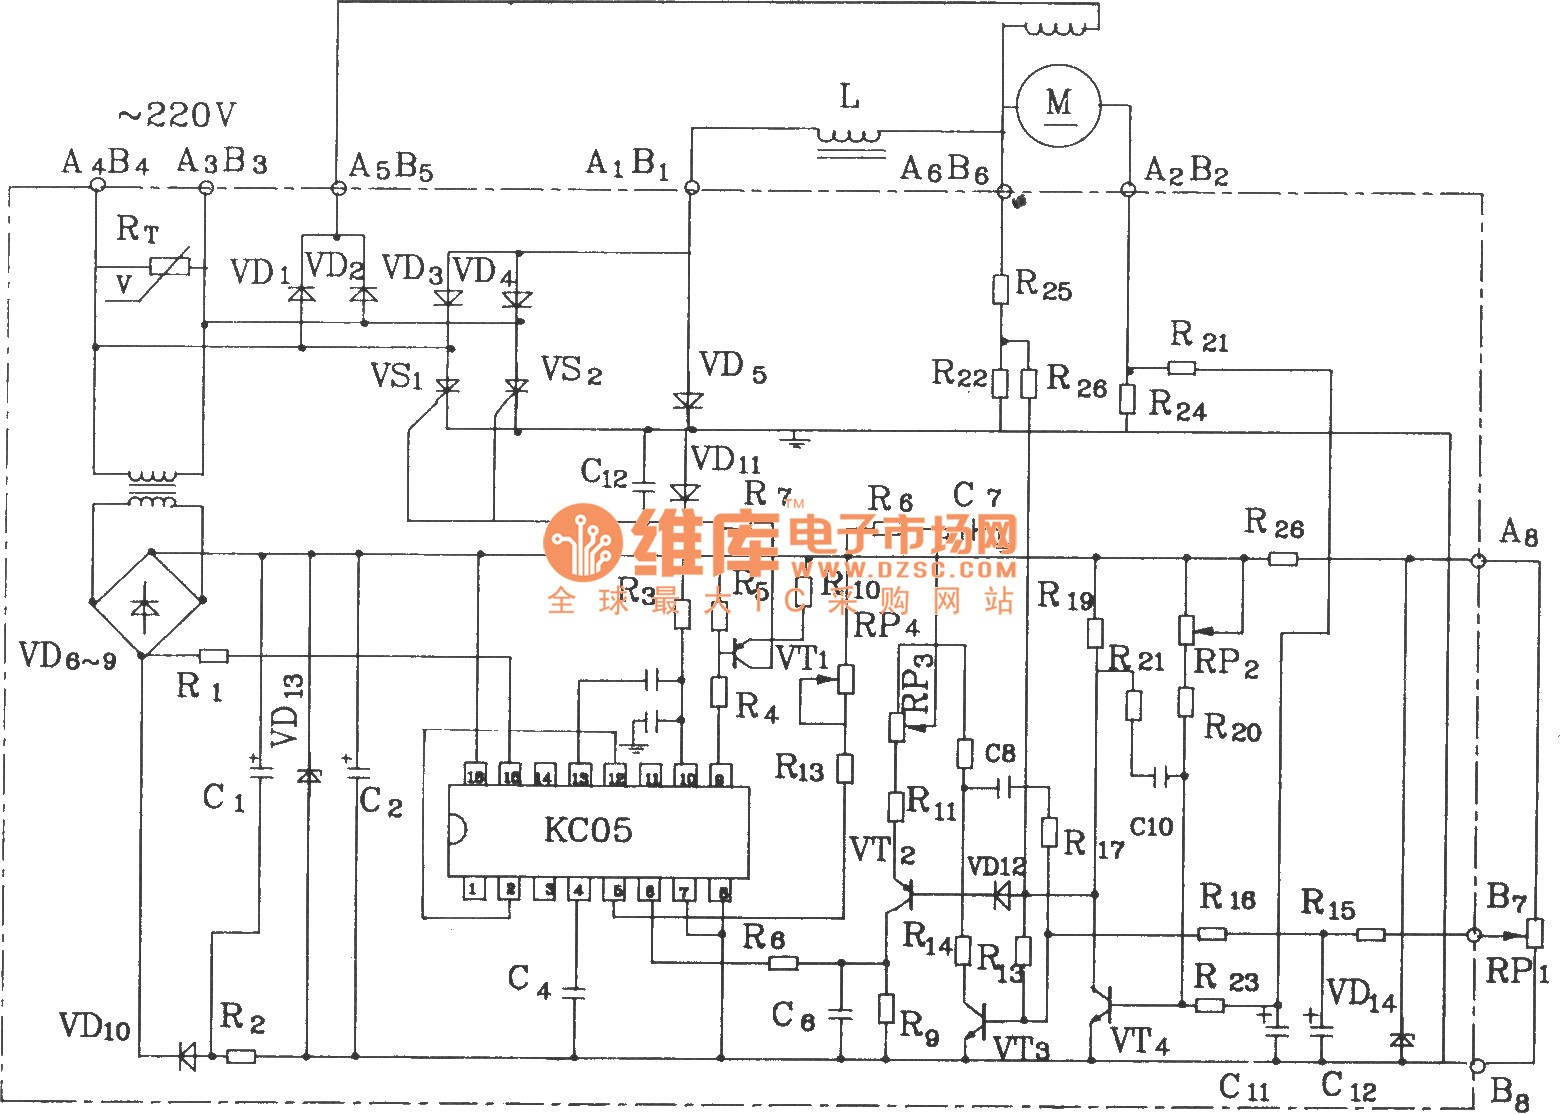 Wiring Diagrams Auto Electrical Wiring Diagram Auto Electrical Wiring